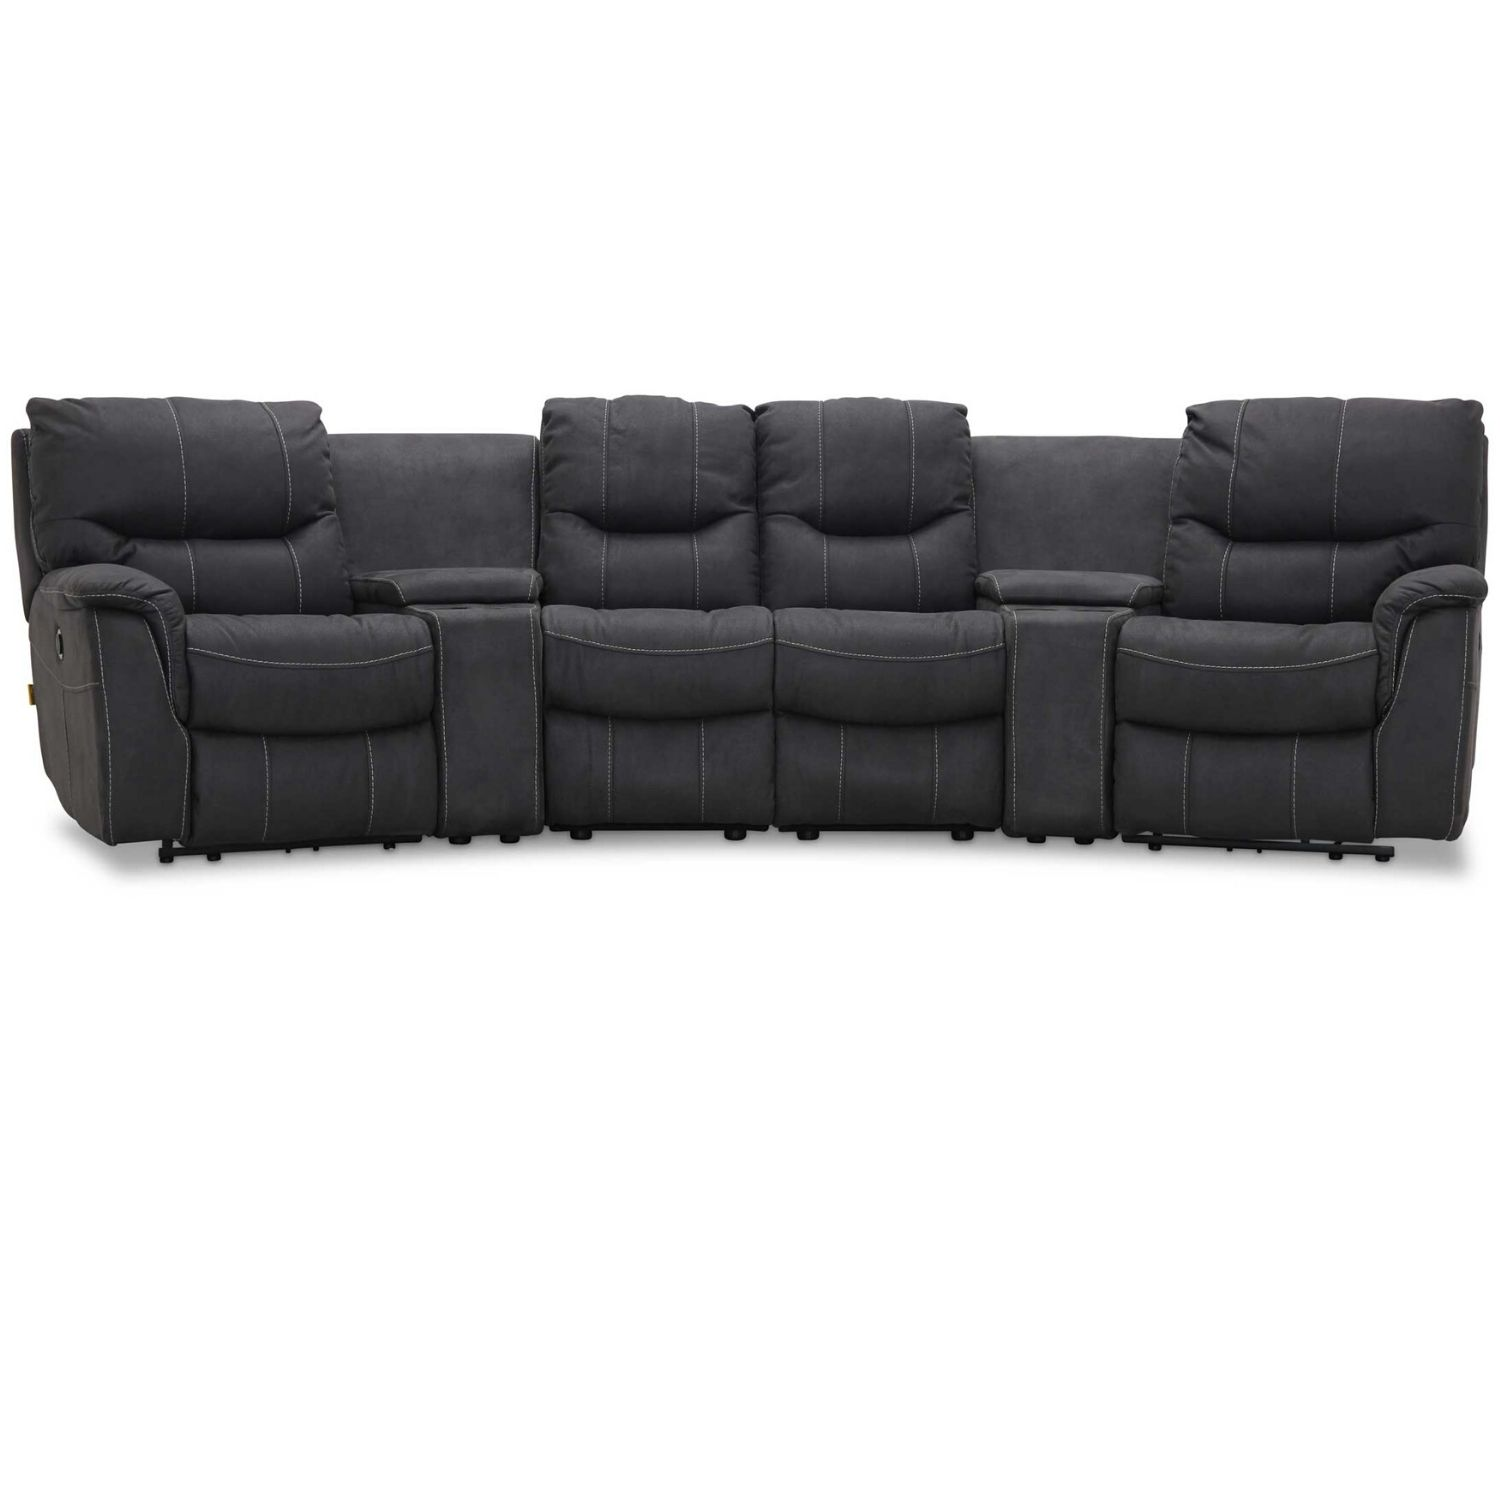 Image of   HAGA Colorado sofa - grafit grå stof, 4 pers., m. recliner funktion